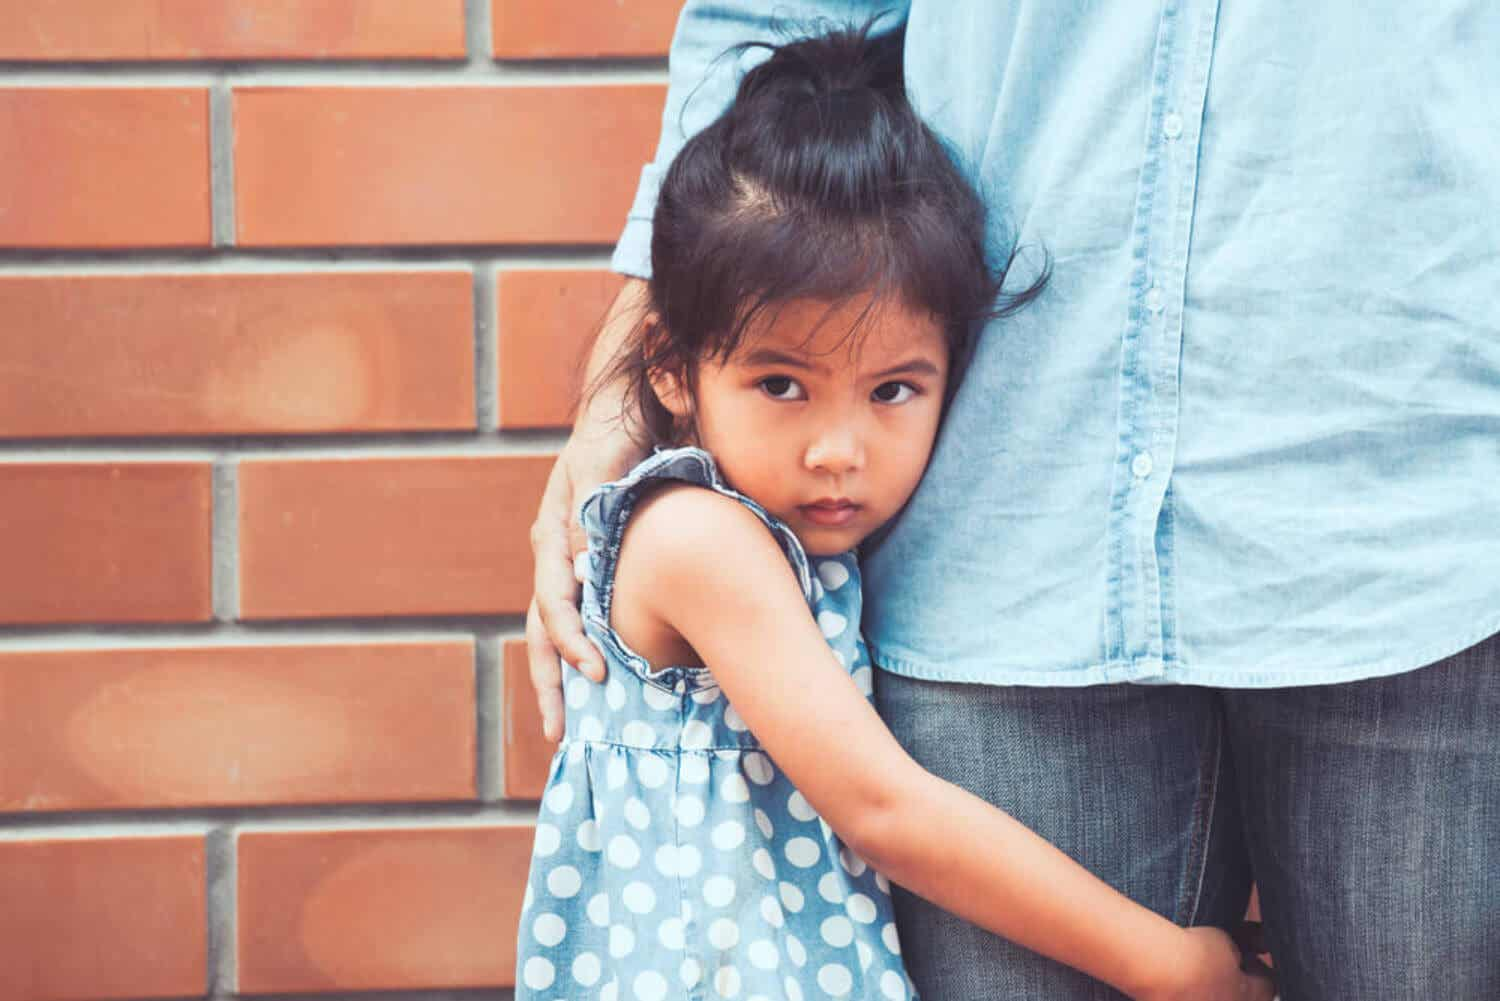 A small child hugging her parent's leg, looking afraid.